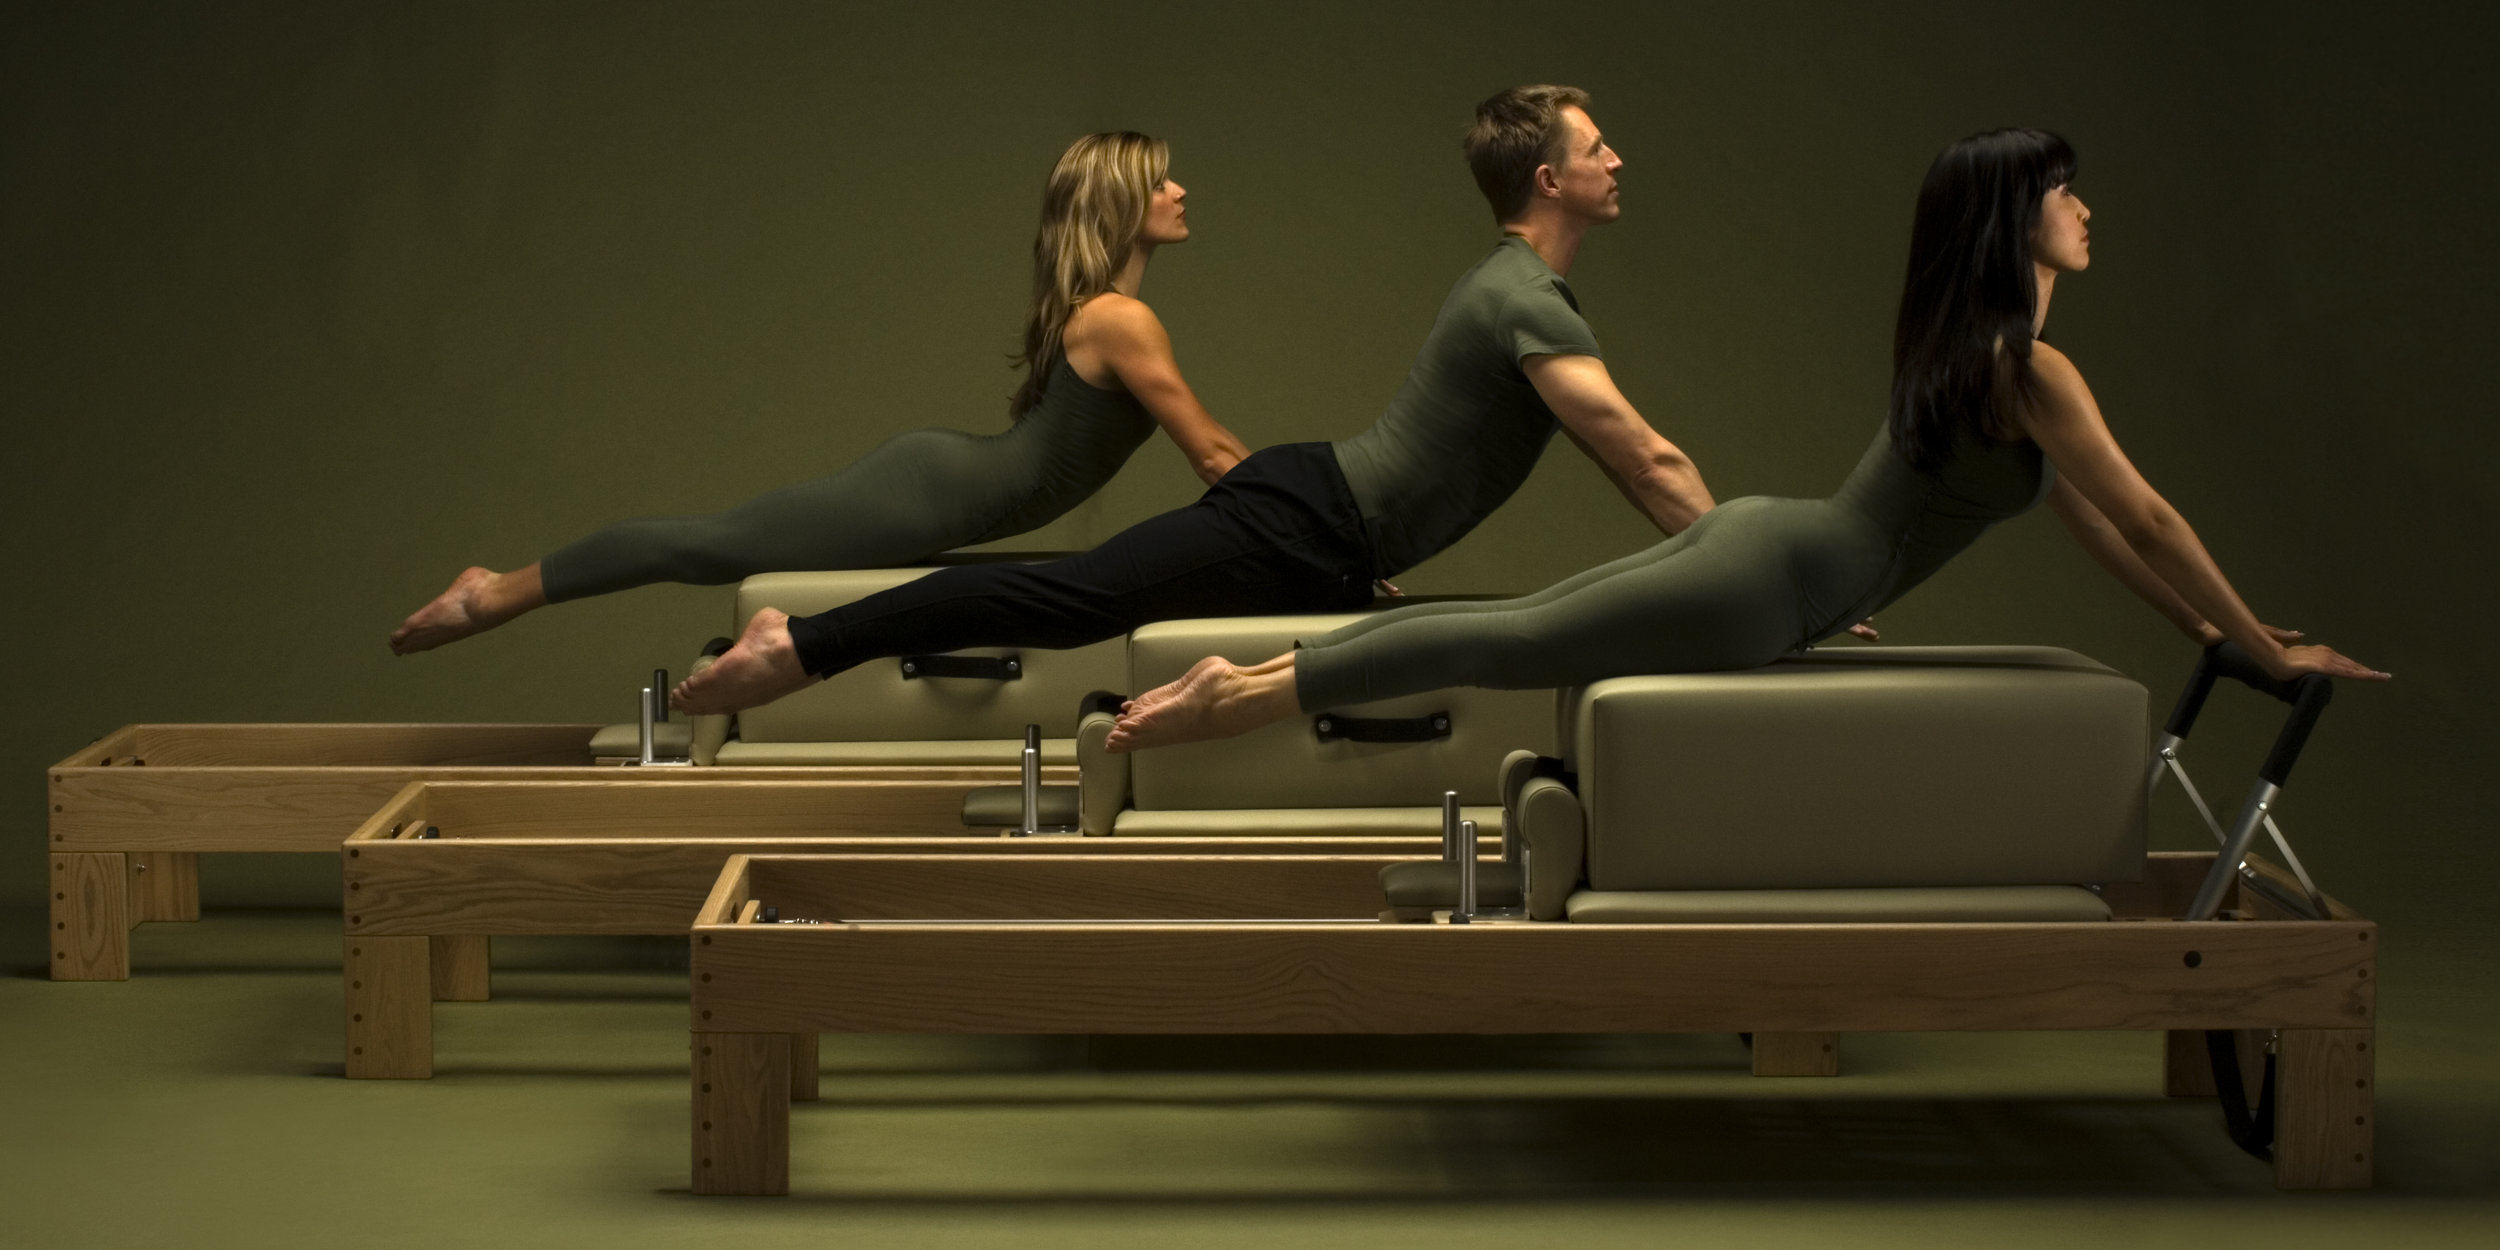 """""""In 10 sessions you will FEEL the difference. In 20 you will SEE the difference and in 30, you will be on your way to a whole NEW BODY.""""-Joseph H. Pilates"""